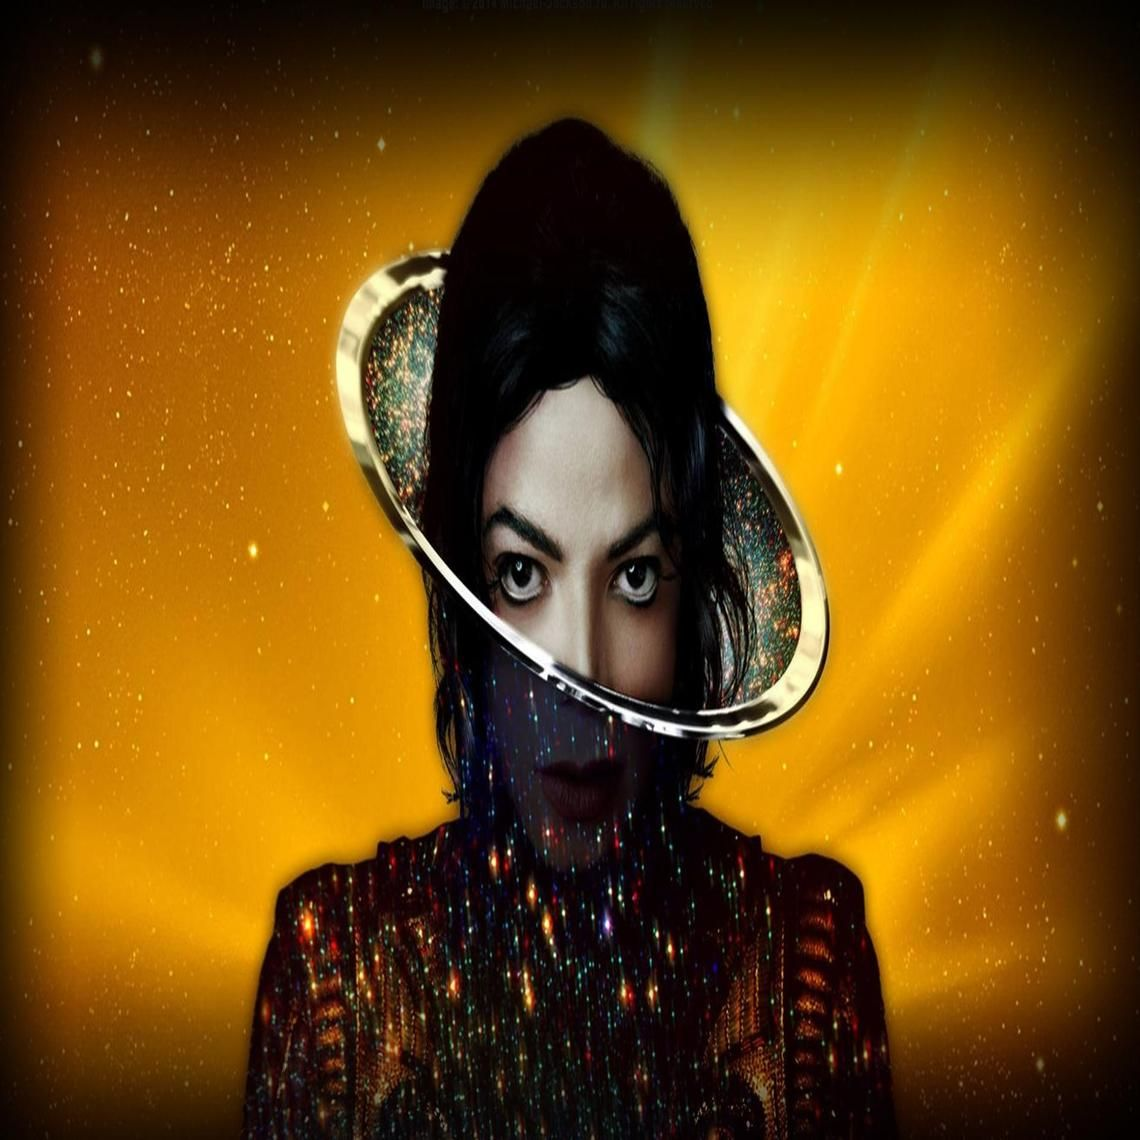 Michael Jackson | wallpaper | Pinterest | Michael jackson and Jackson